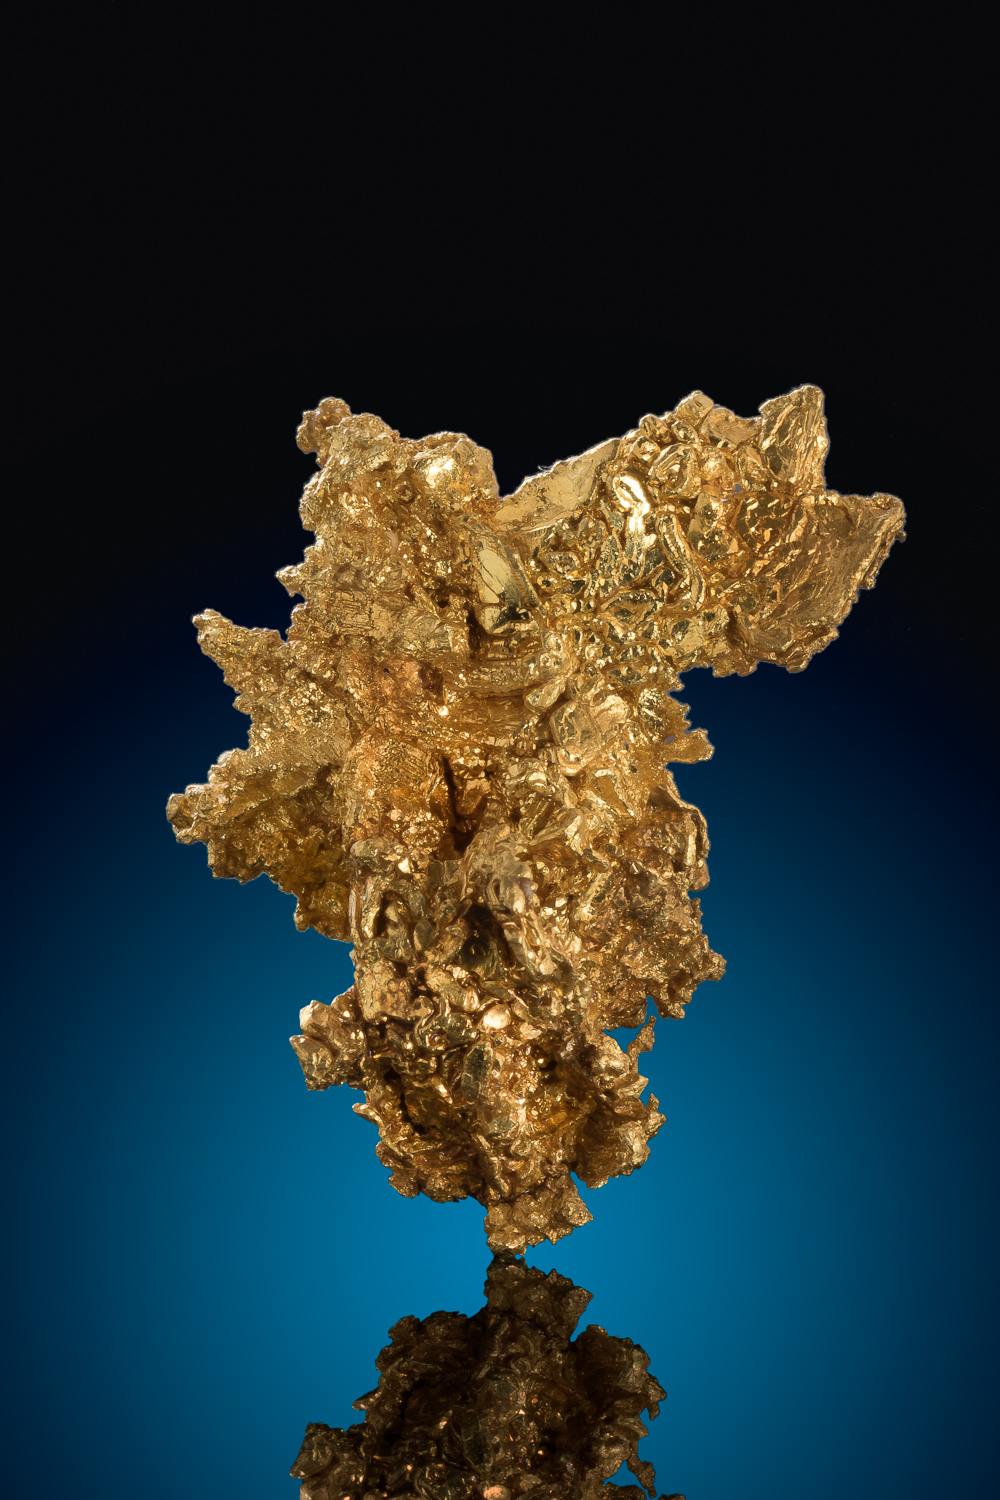 My Best from the Colorado Quartz Mine - 20 gram gold crystal